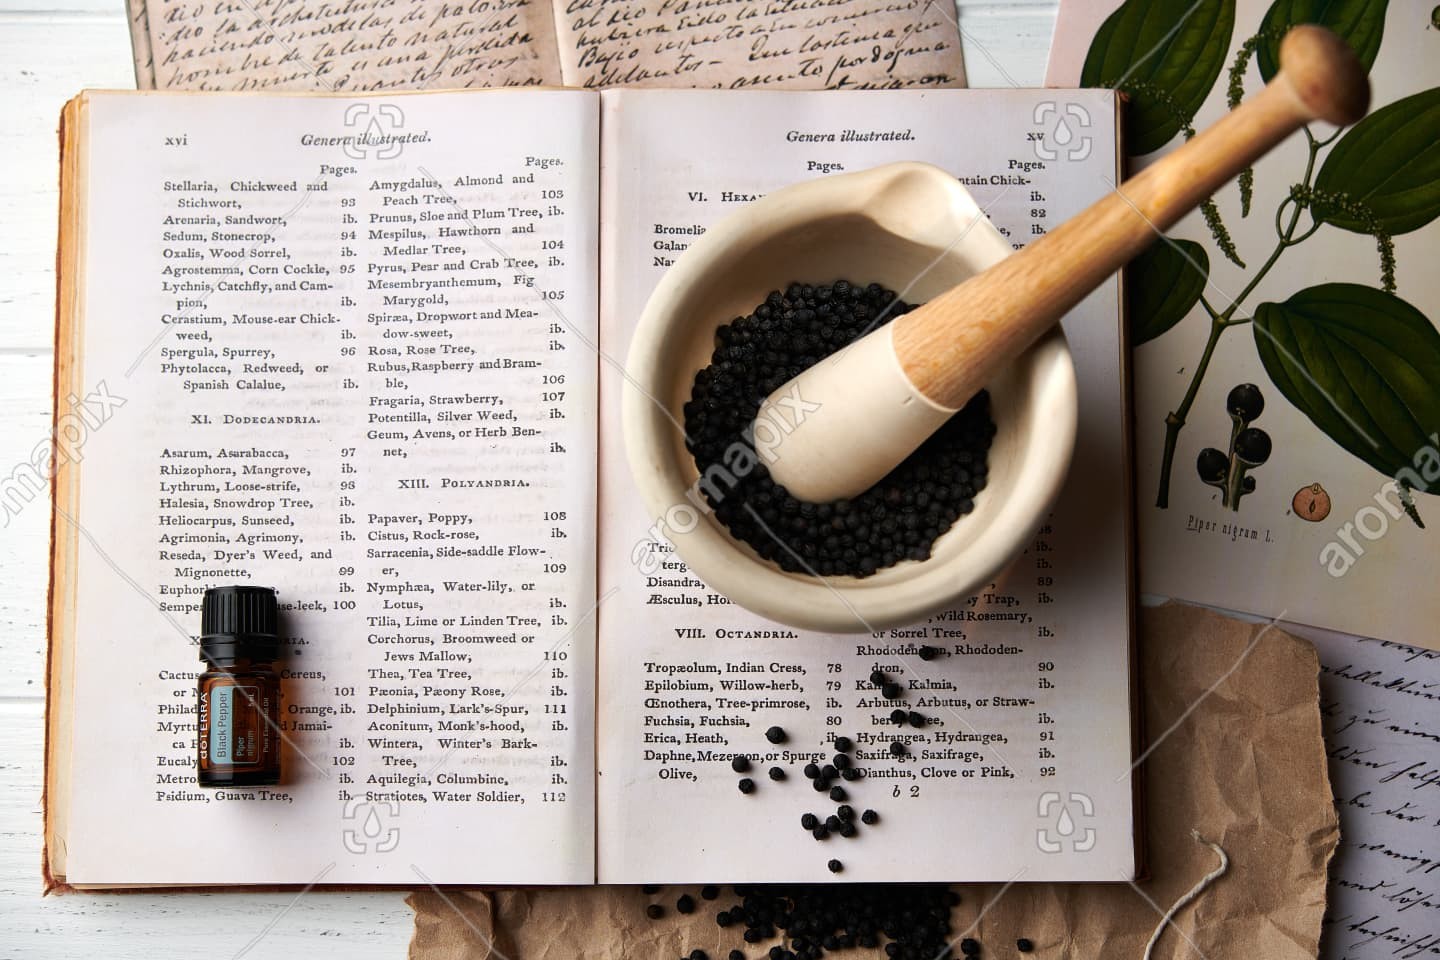 doTERRA Black Pepper with dried black pepper in a mortar and pestle